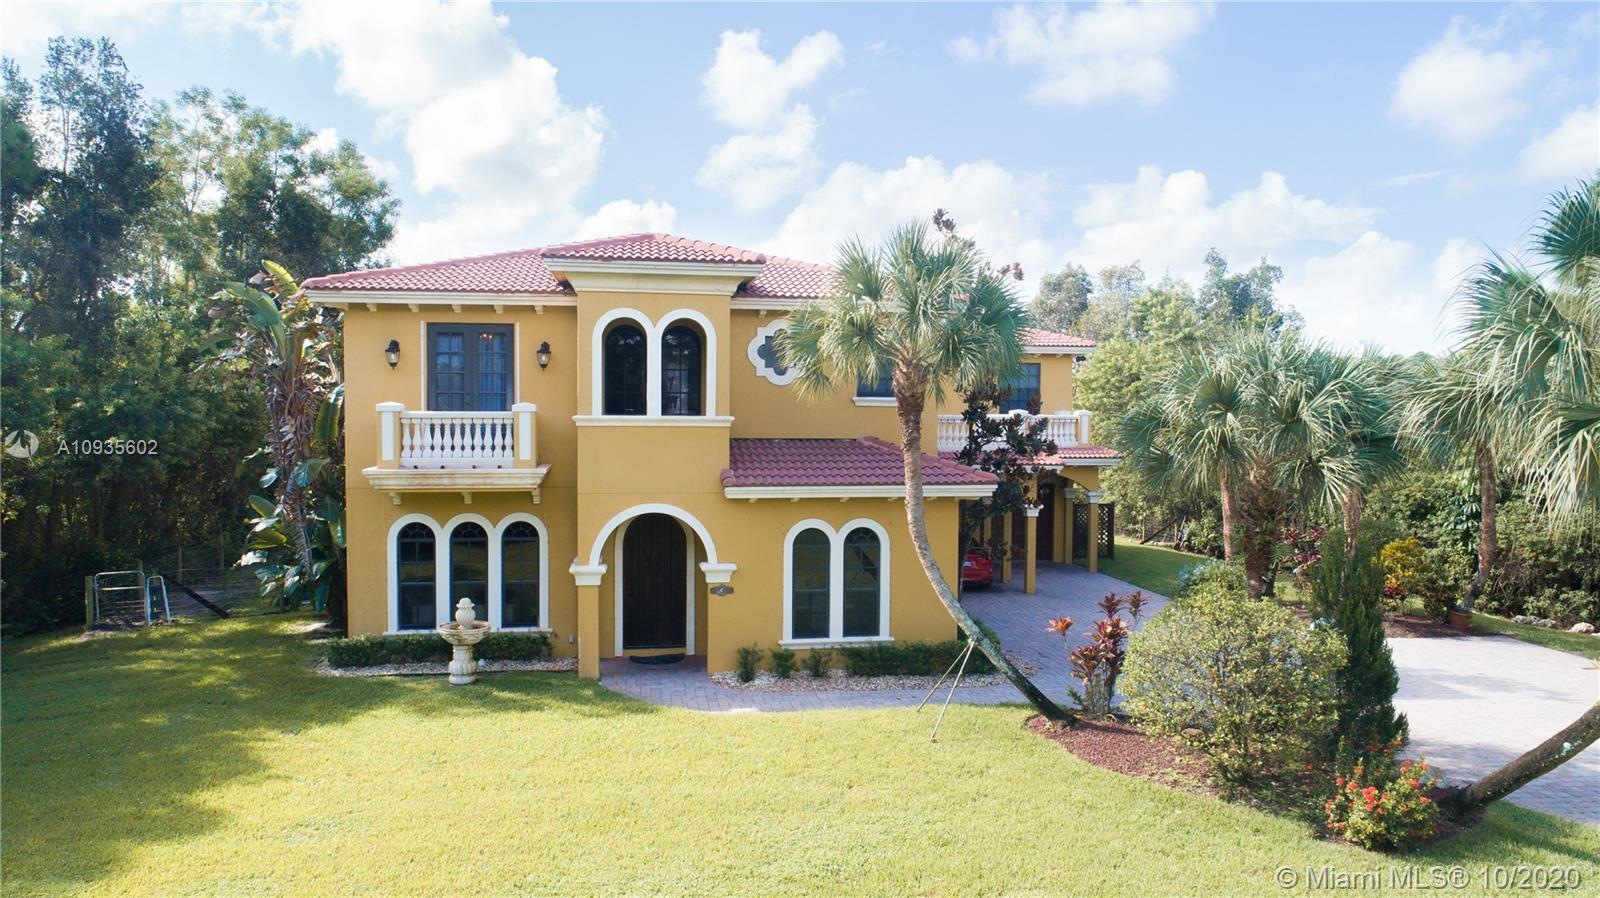 Nestled on 1.33 acres in the pastoral beauty of Jupiter Farms, this secluded Mediterranean influence